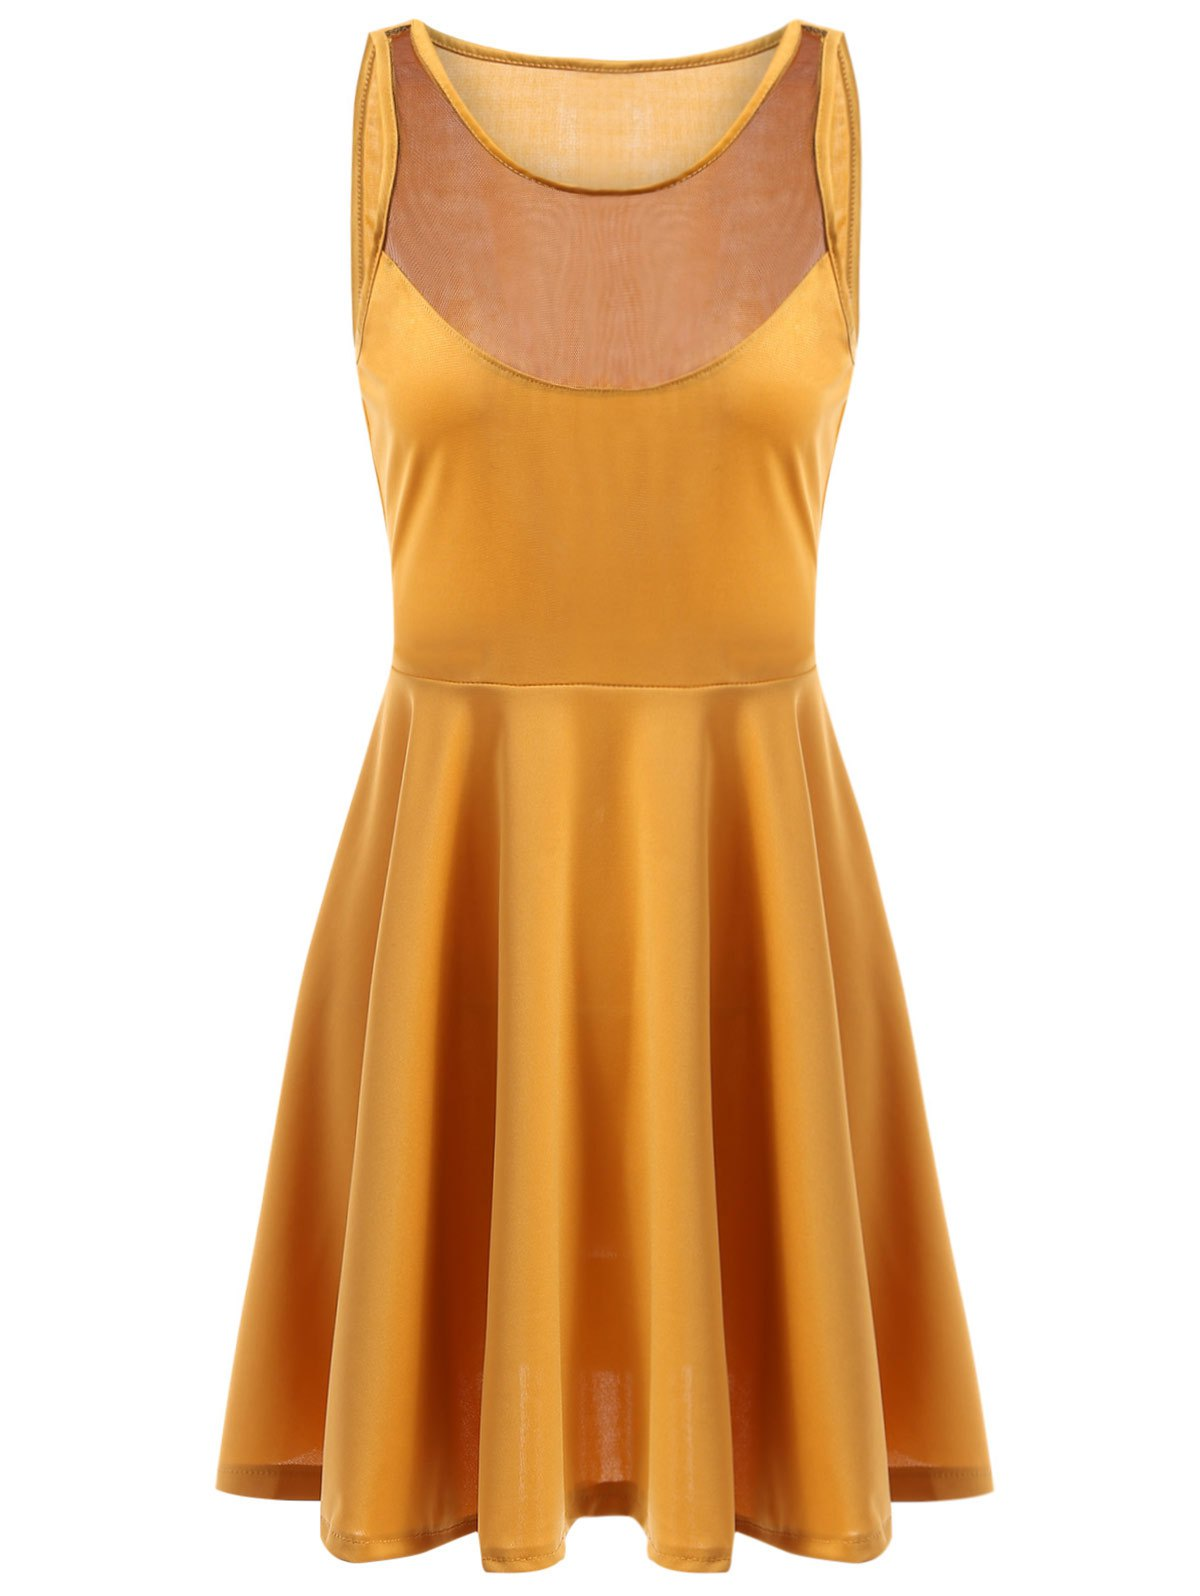 Casual Jewel Neck Sleeveless See-Through A-Line Women's Dress - YELLOW XL